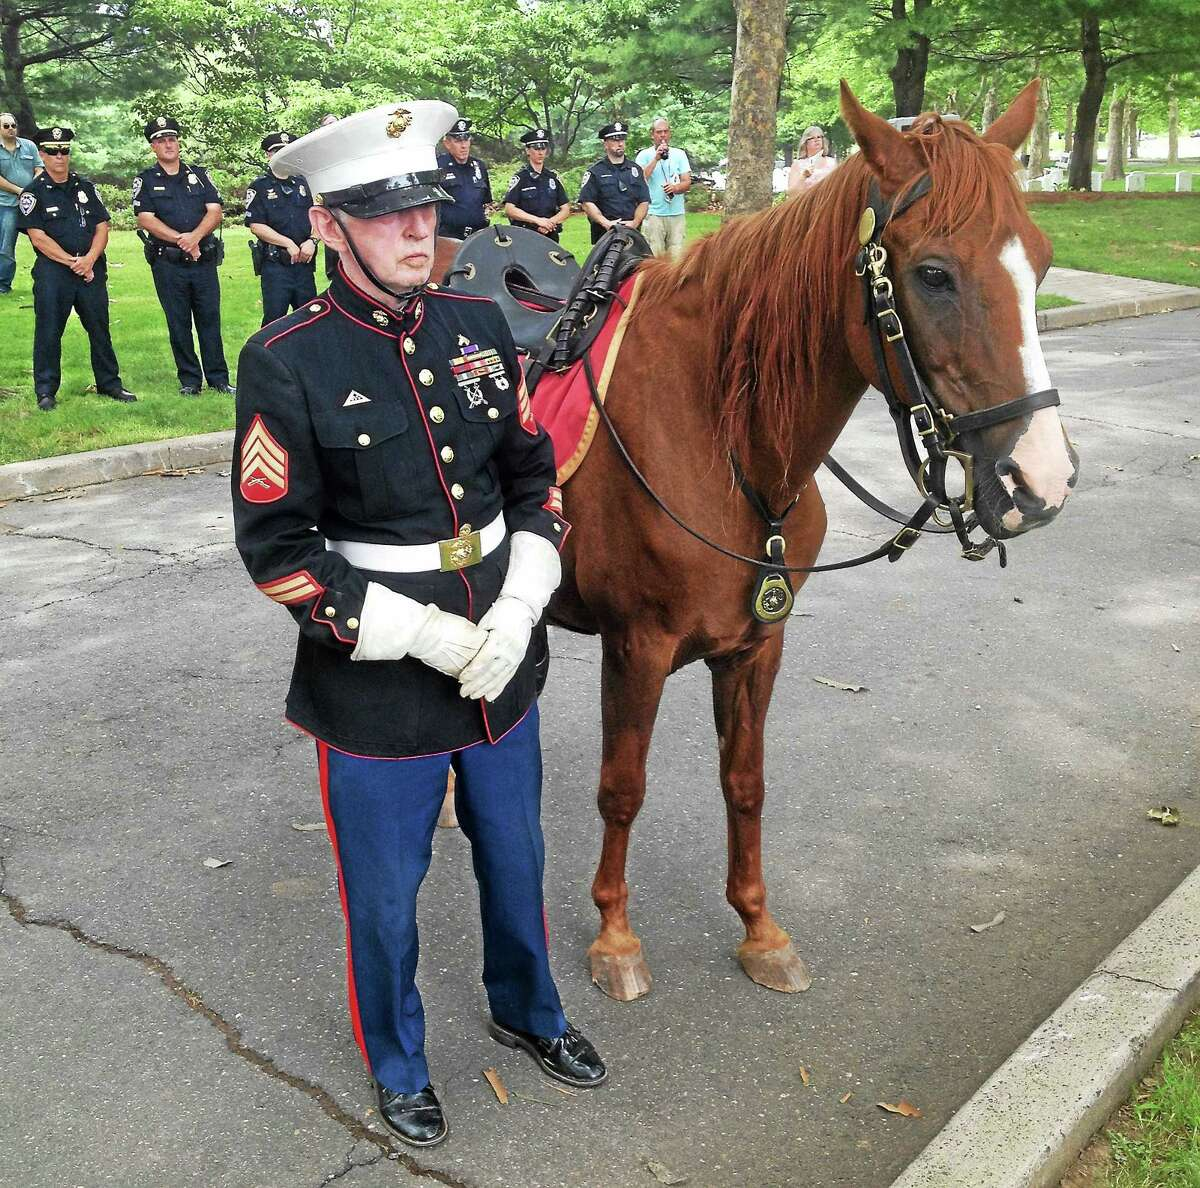 """""""While we may not have met them in life, we are laying them to rest with the greatest respect,"""" Lt. Gov. Nancy Wyman said during a burial ceremony Wednesday at the state cemetery on Bow Lane as hundreds took part and stood by."""